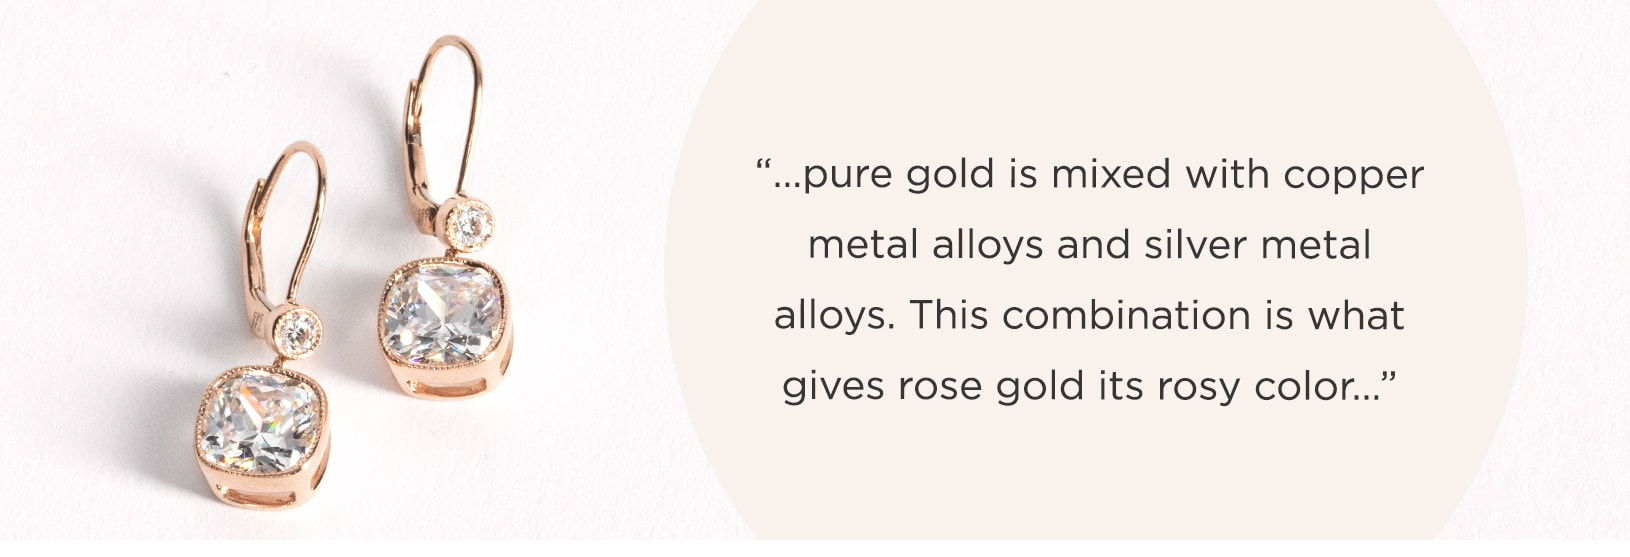 A mix of copper and silver alloys give rose gold its pinkish hue